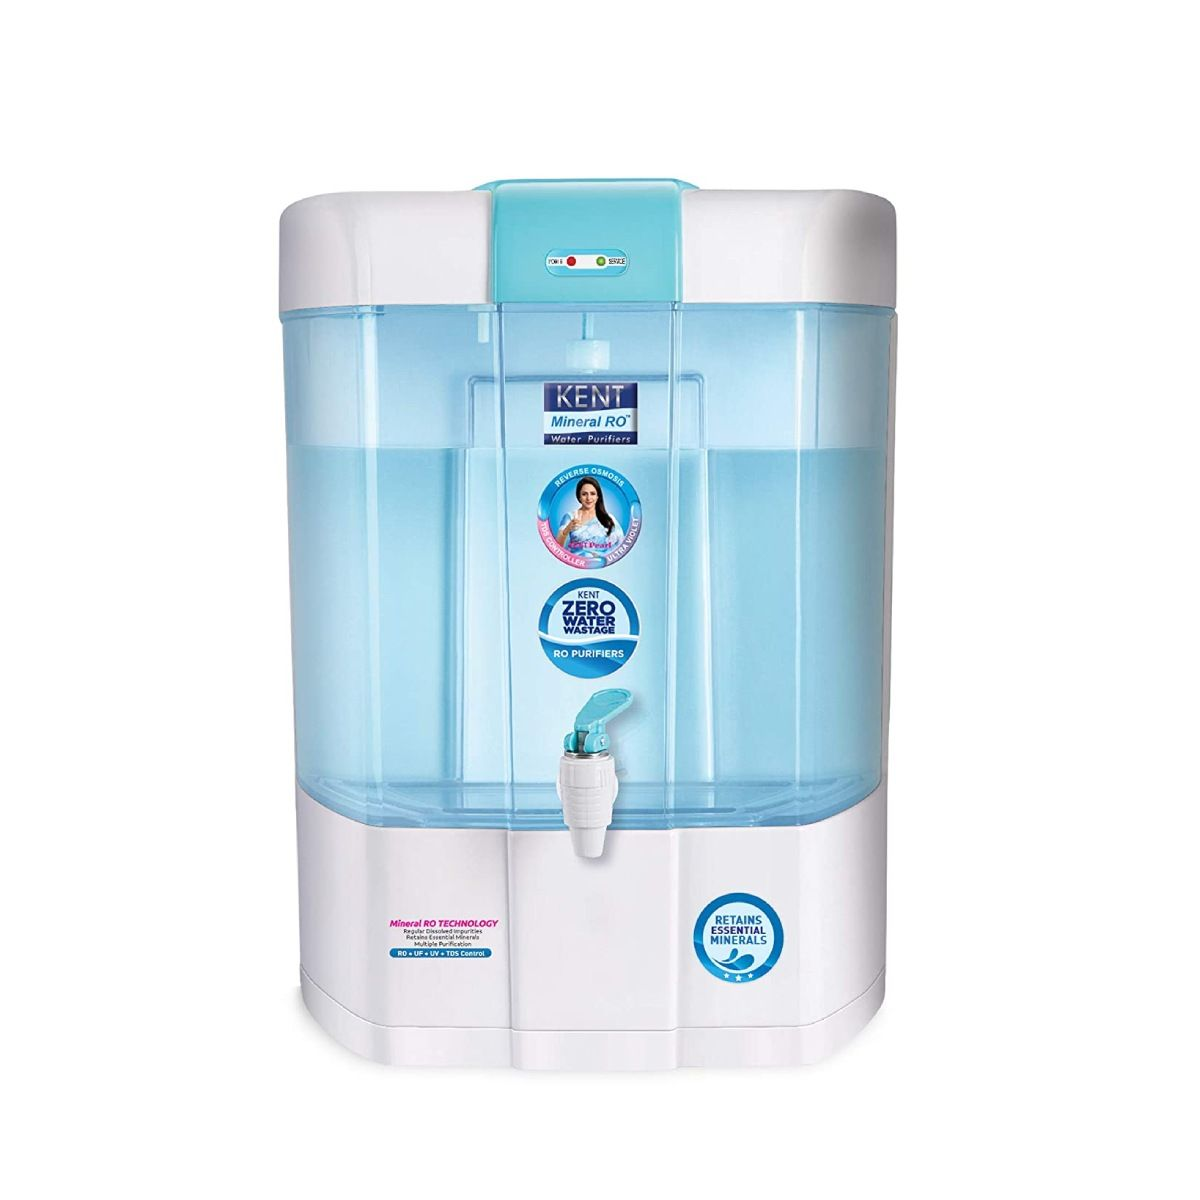 Kent PEARL(11002) 8 L RO + UV +UF Water Purifier (blue and white)